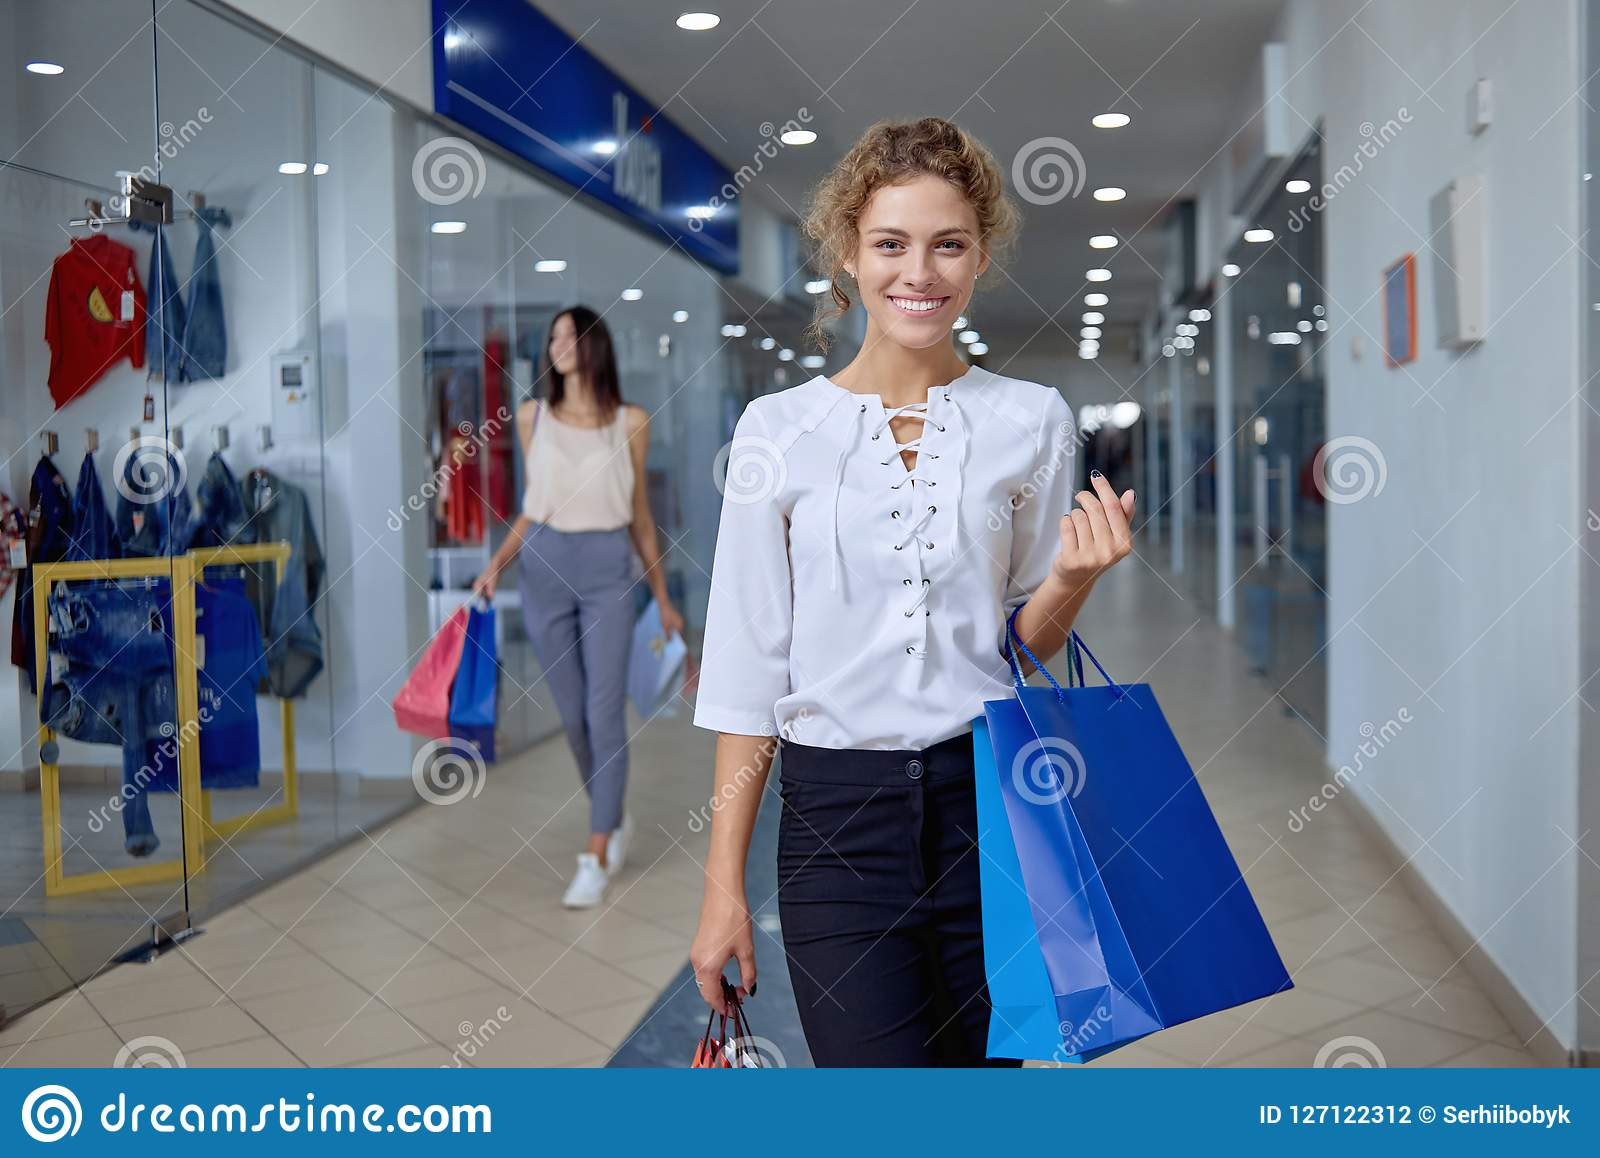 6db90afe Portrait of elegant women in white shirt and black trousers with bags  shopping in mall. Curly blonde going in hallway, looking at camera and  smiling.